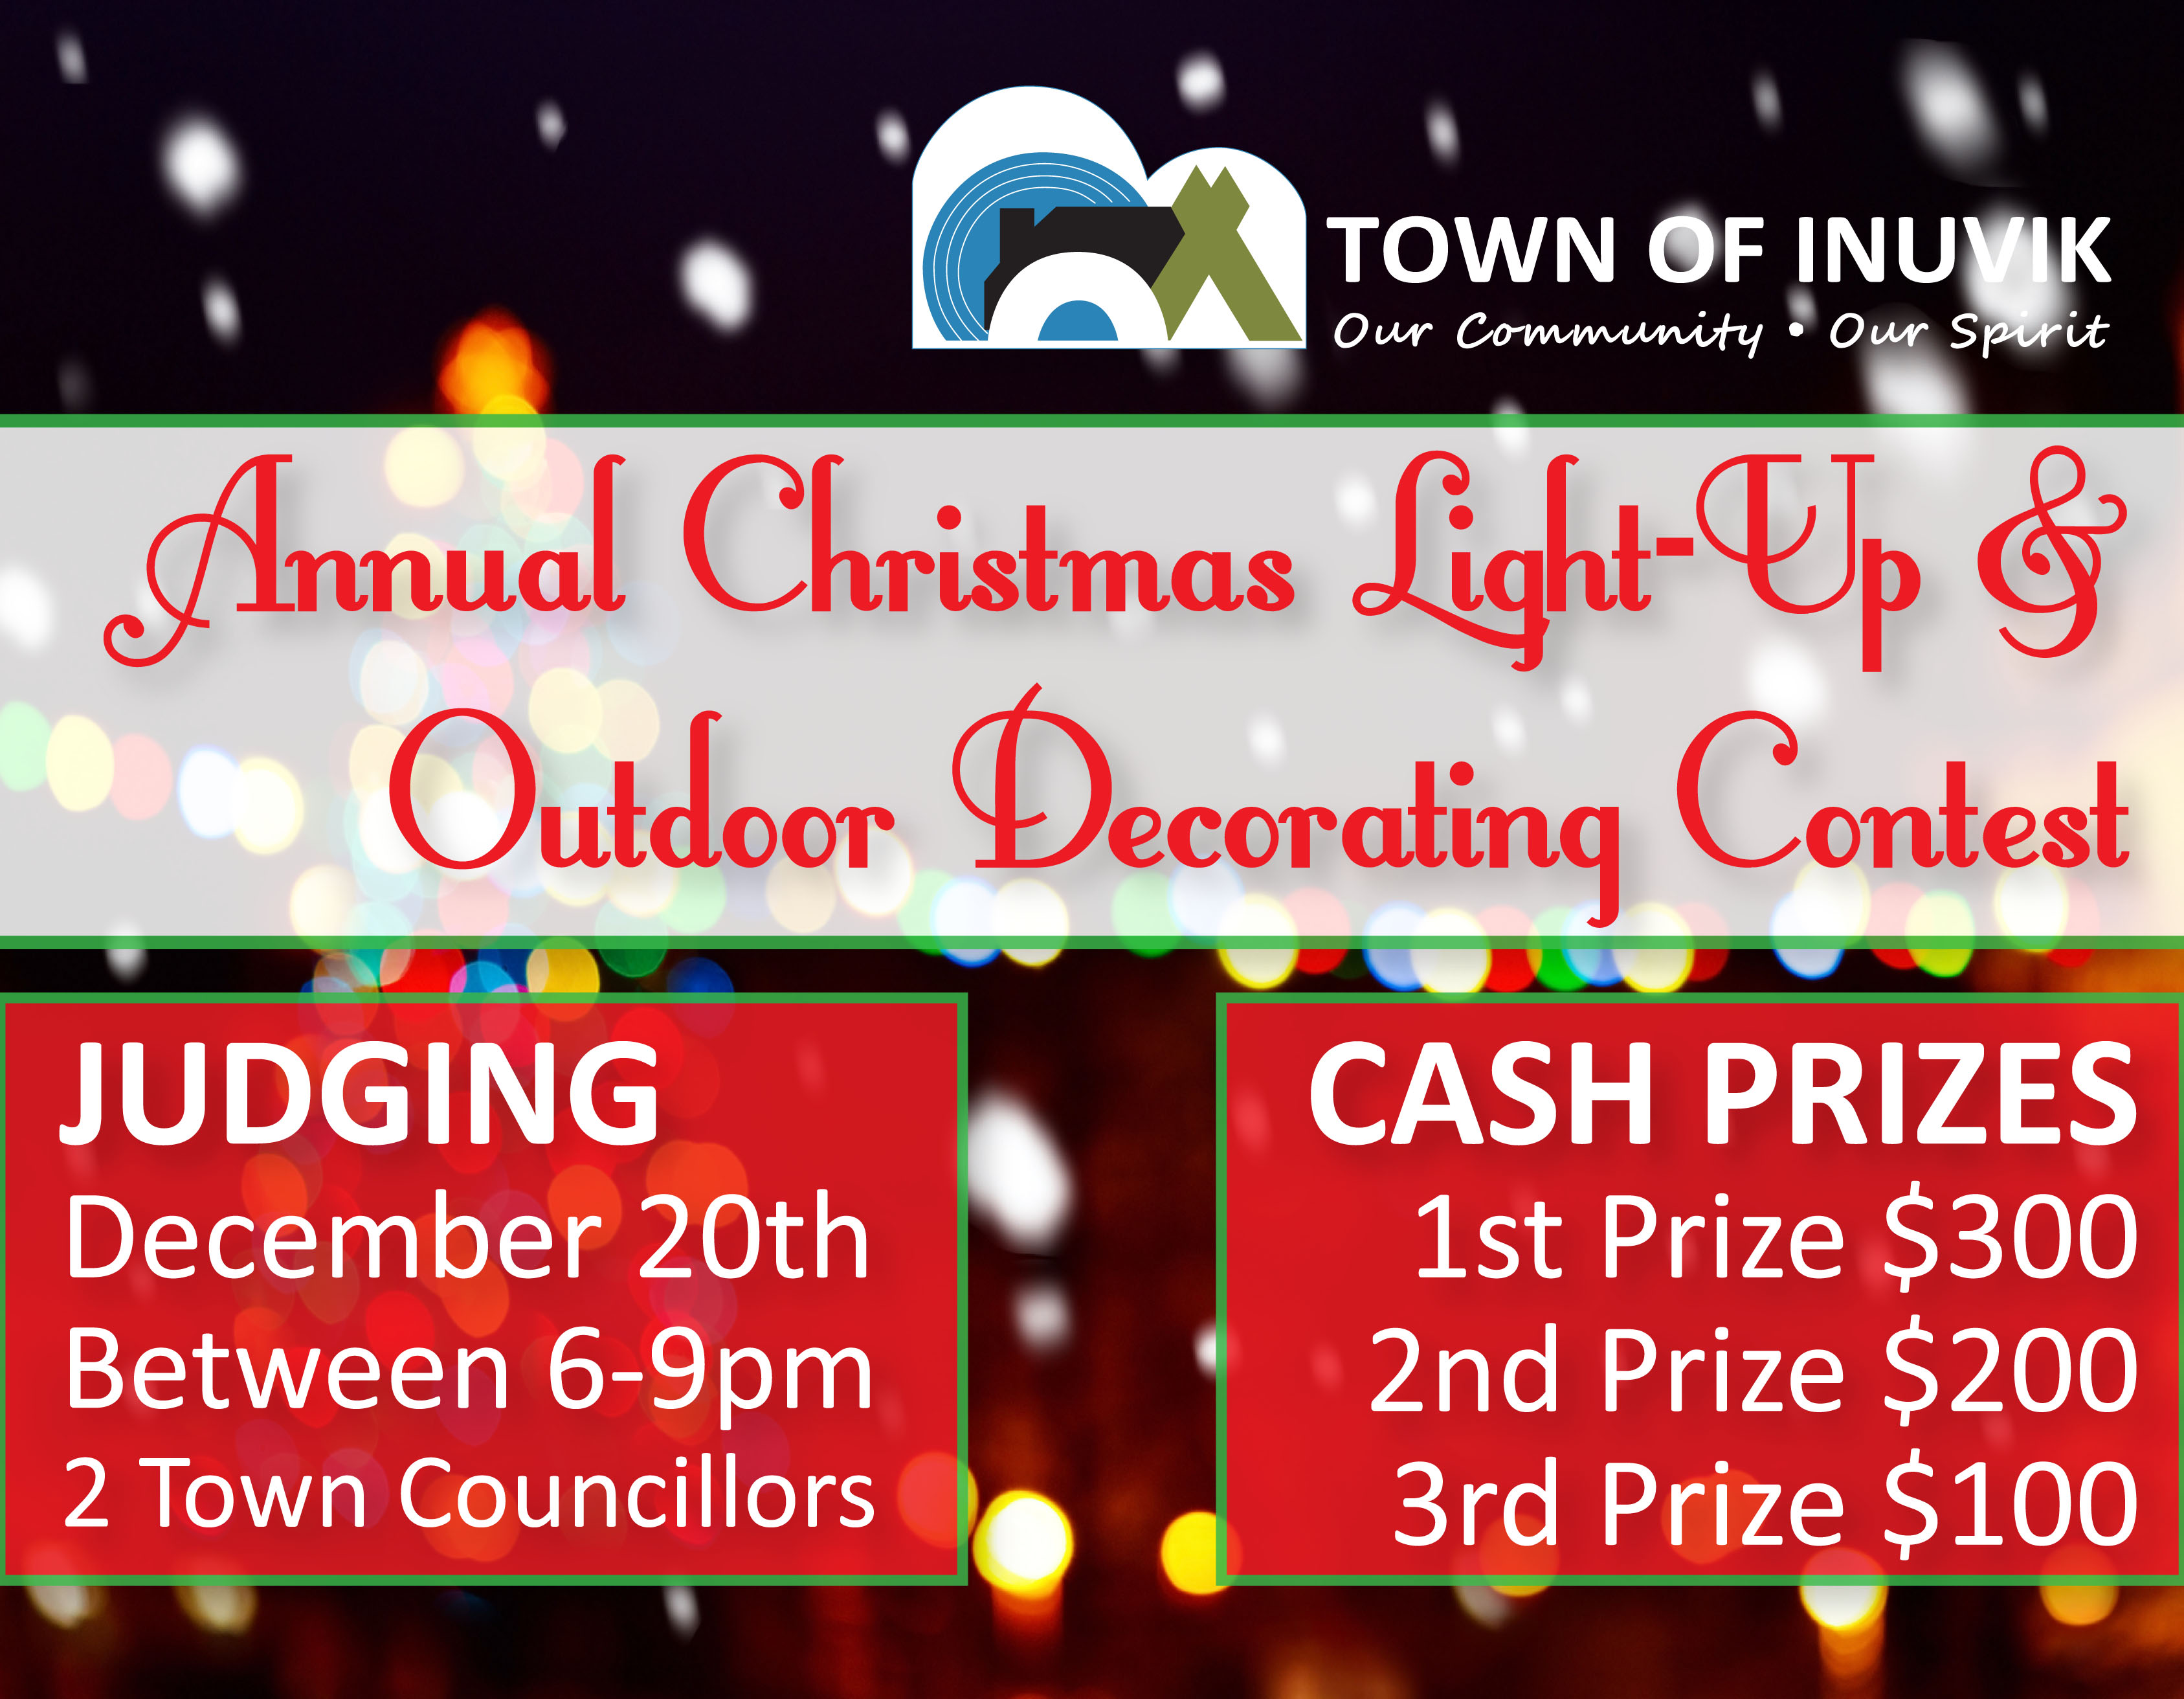 2018 Christmas Light-up & Outdoor Decorating Contest